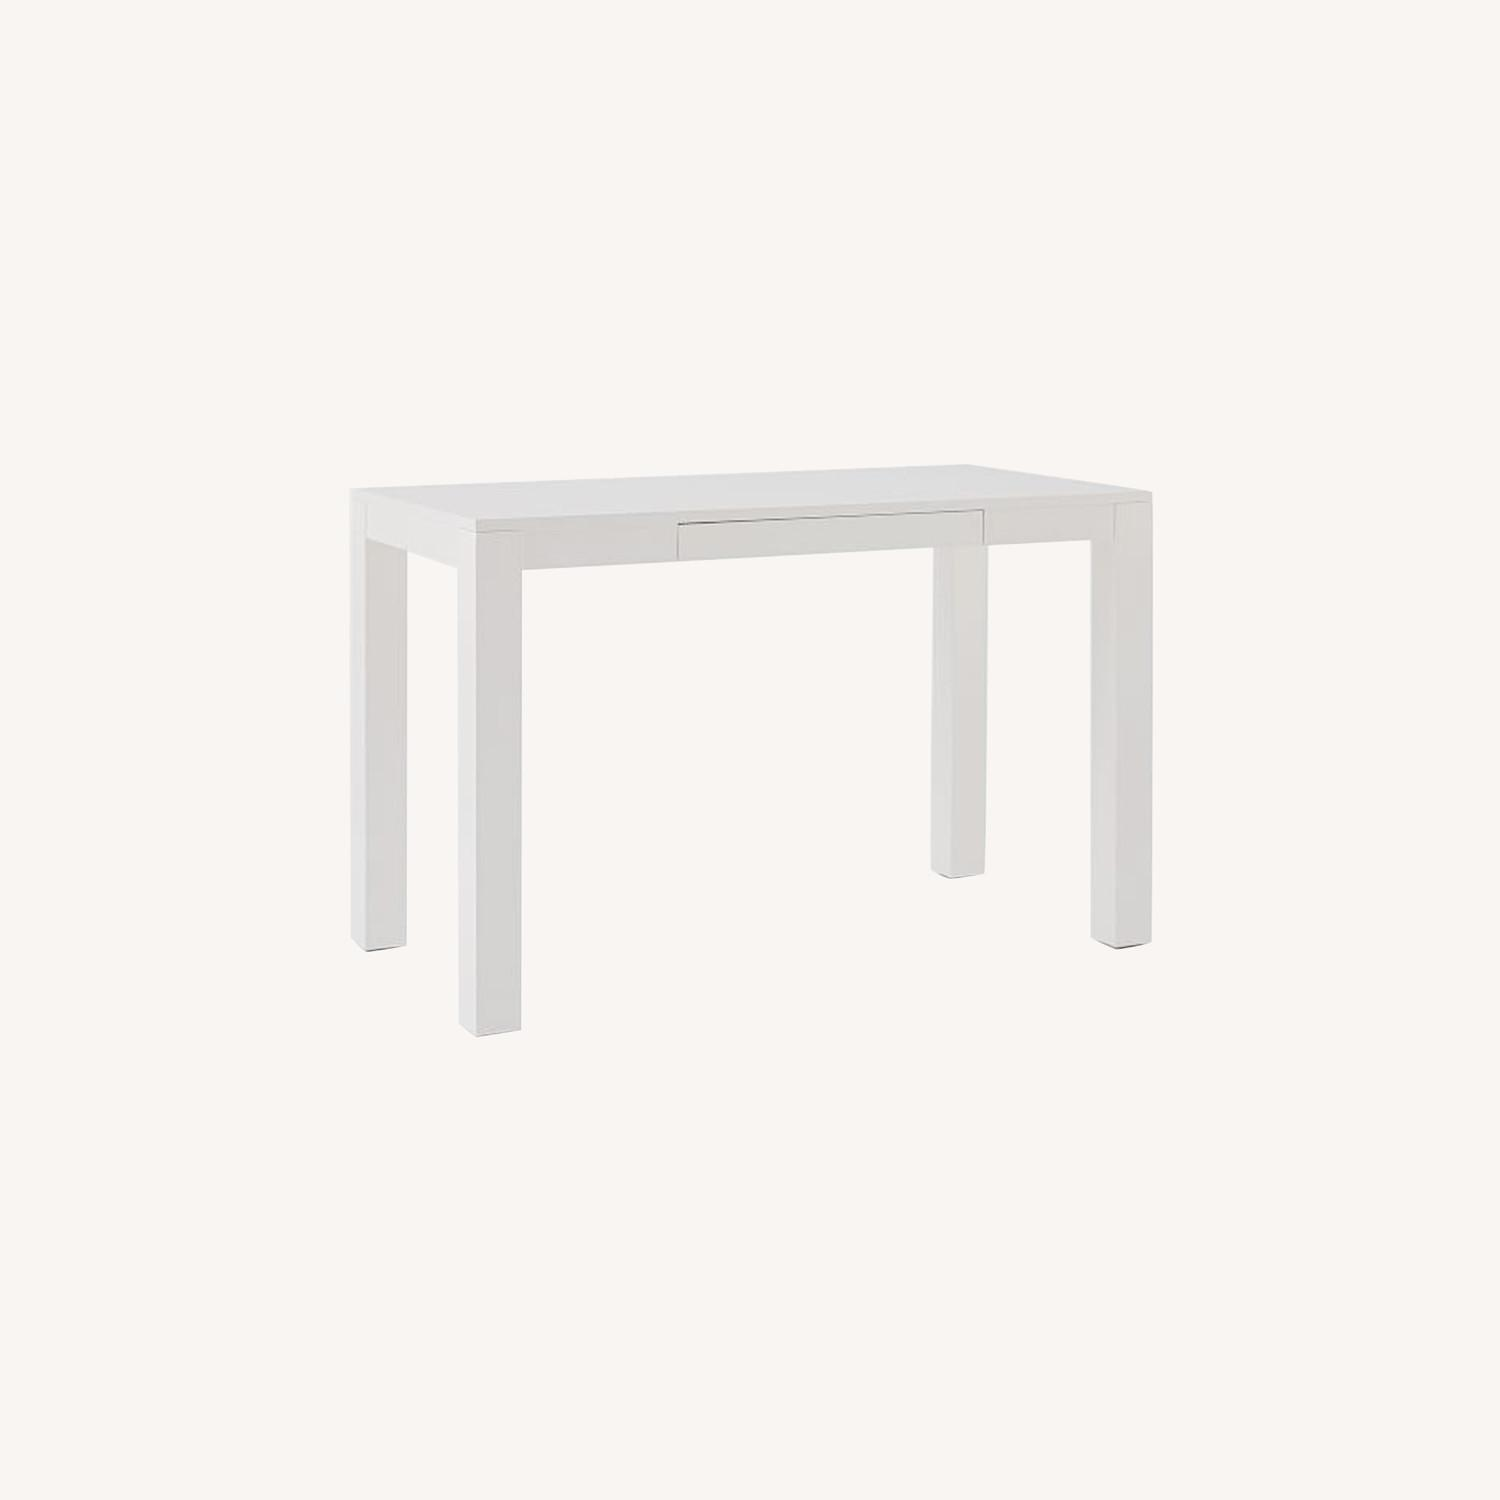 West Elm Parsons Desk With Drawers, White - image-0